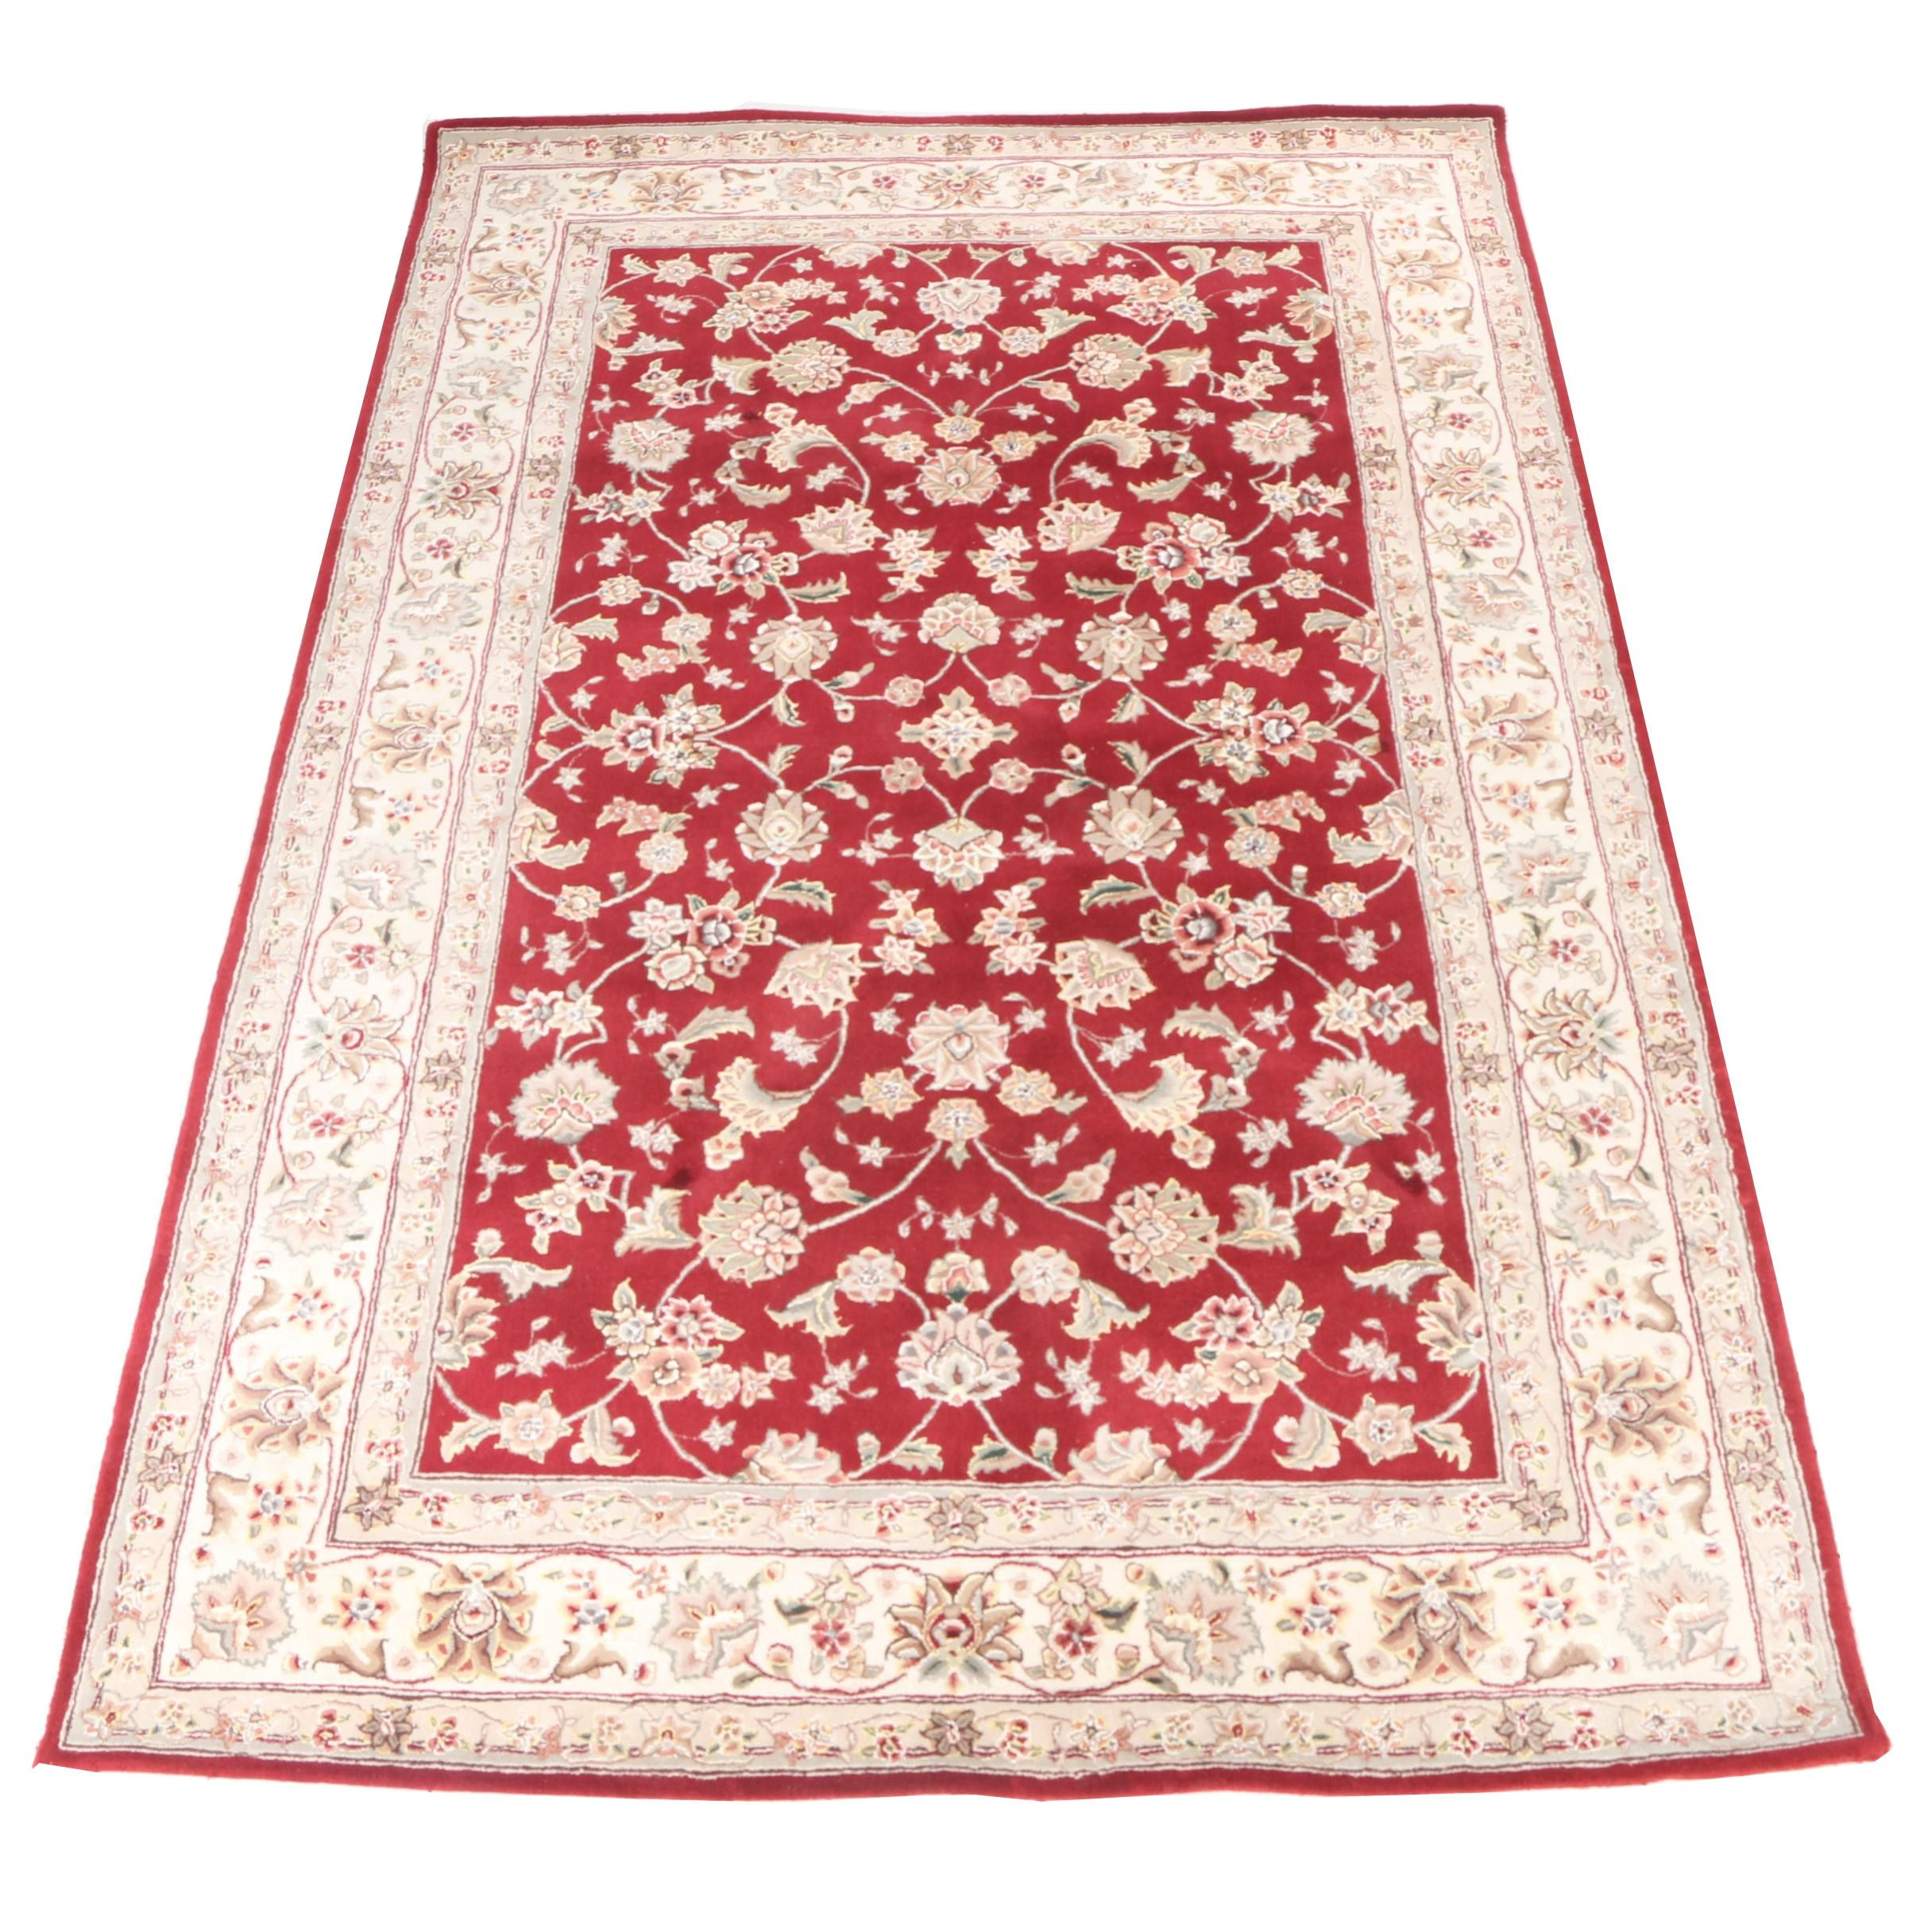 Hand-Tufted Persian Style Area Rug